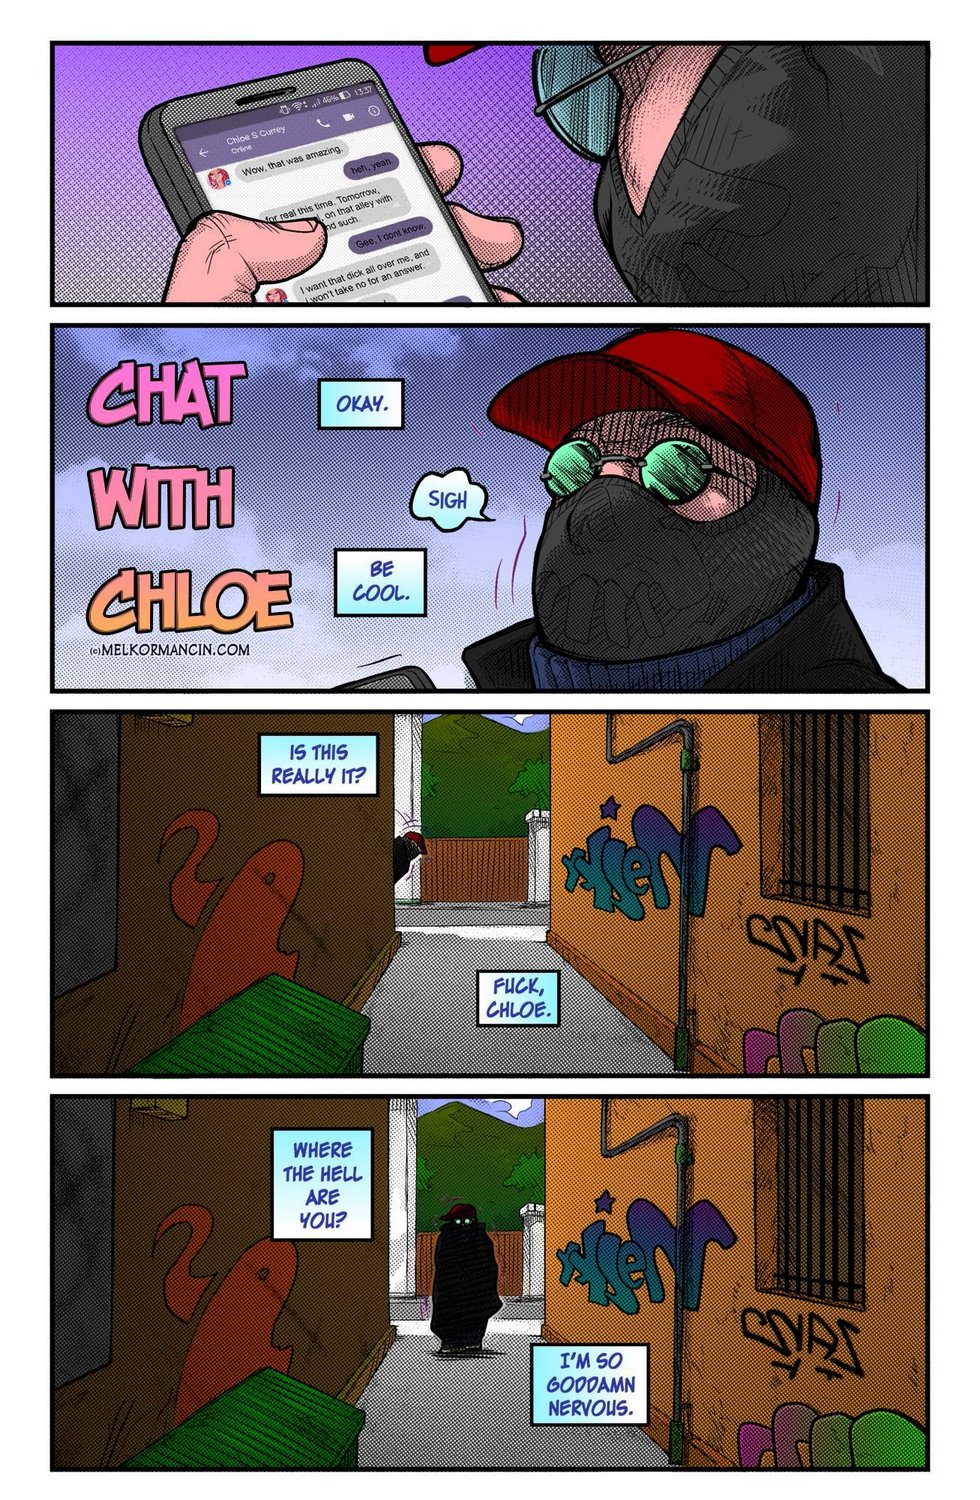 Melkor Mancin- a Chat with Chloe